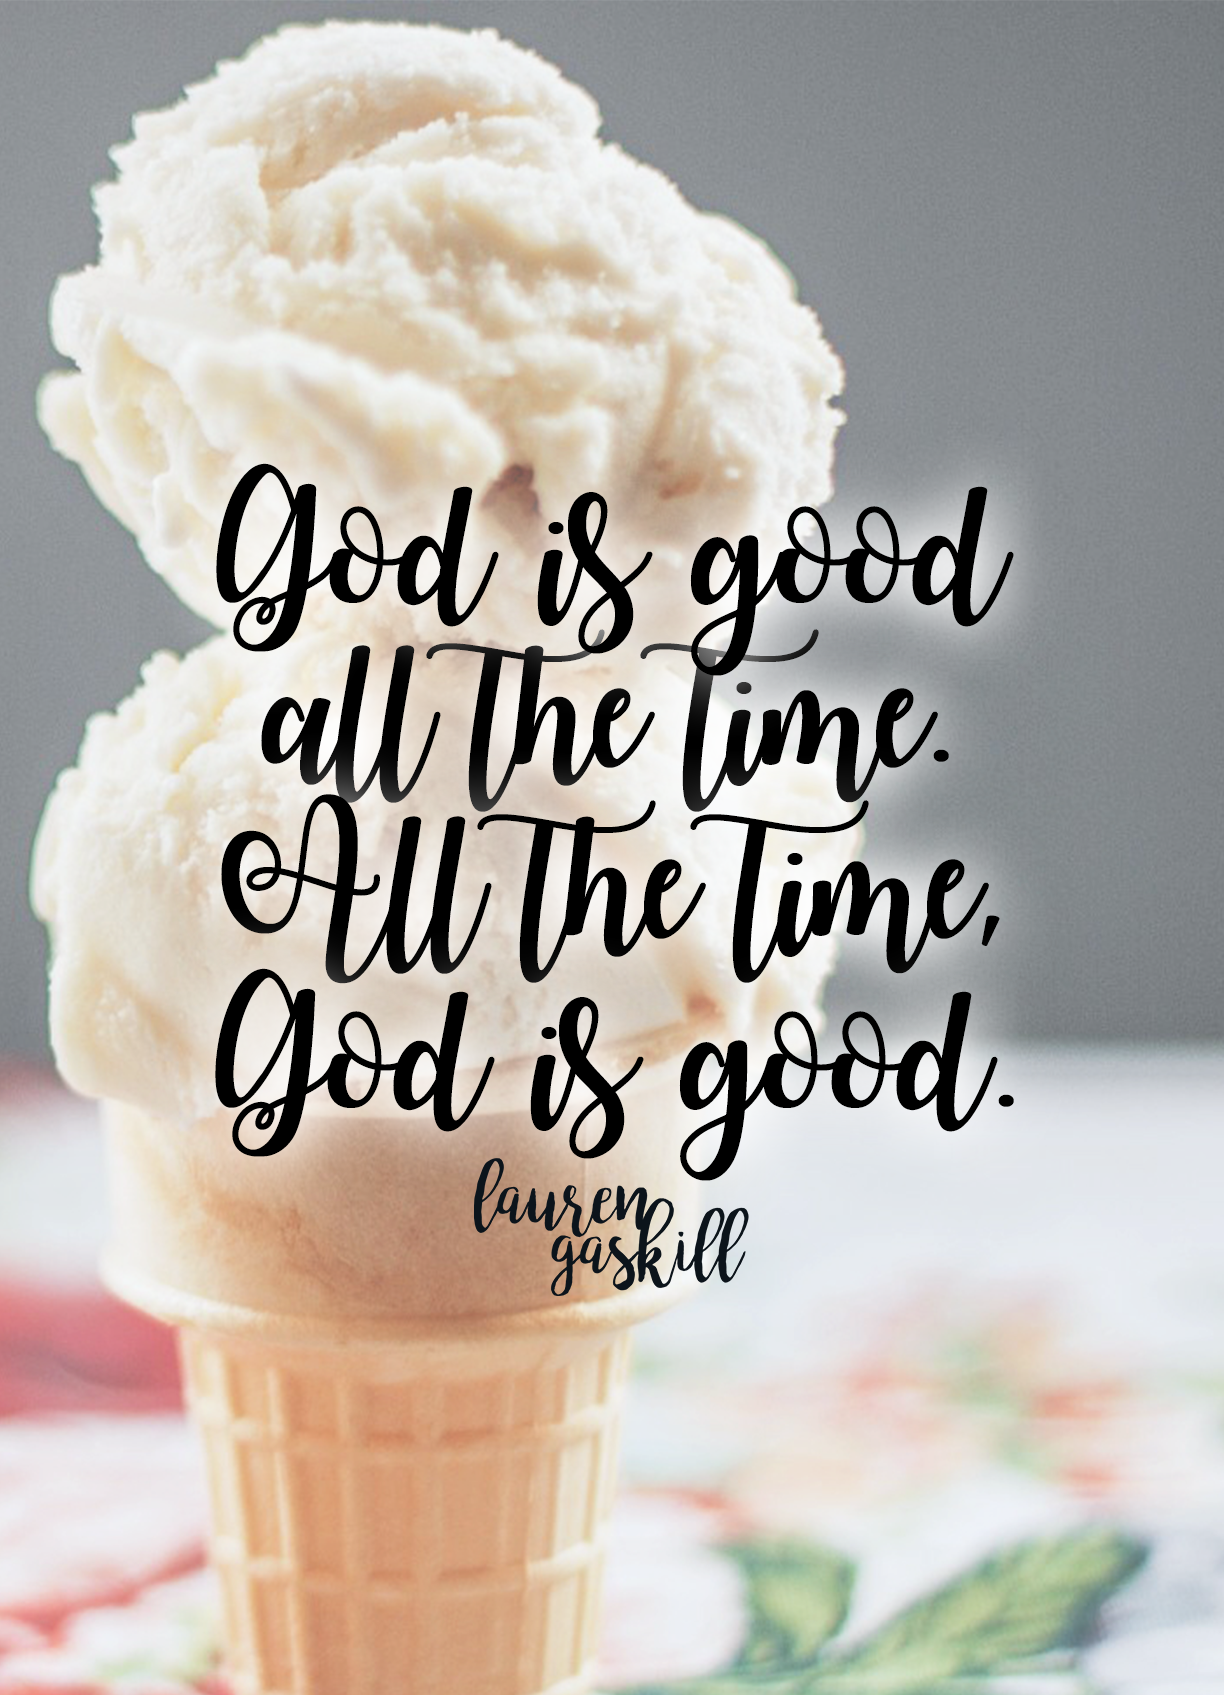 God is good all the time. All the time, God is good.